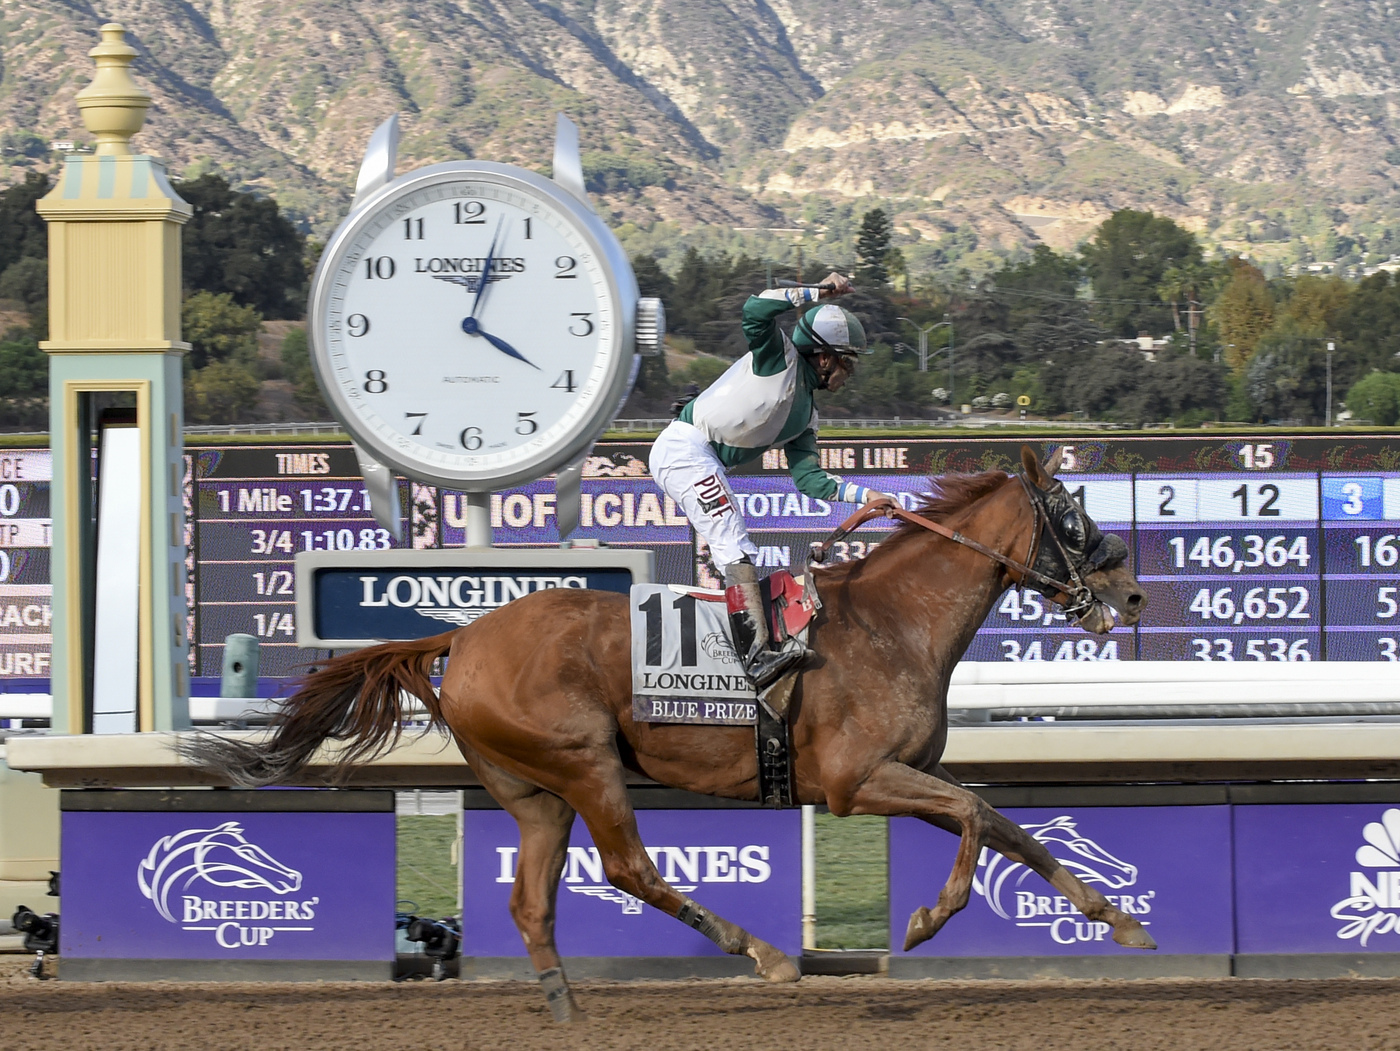 Longines Flat Racing Event: Longines timed the 36th Breeders' Cup World Championships 4